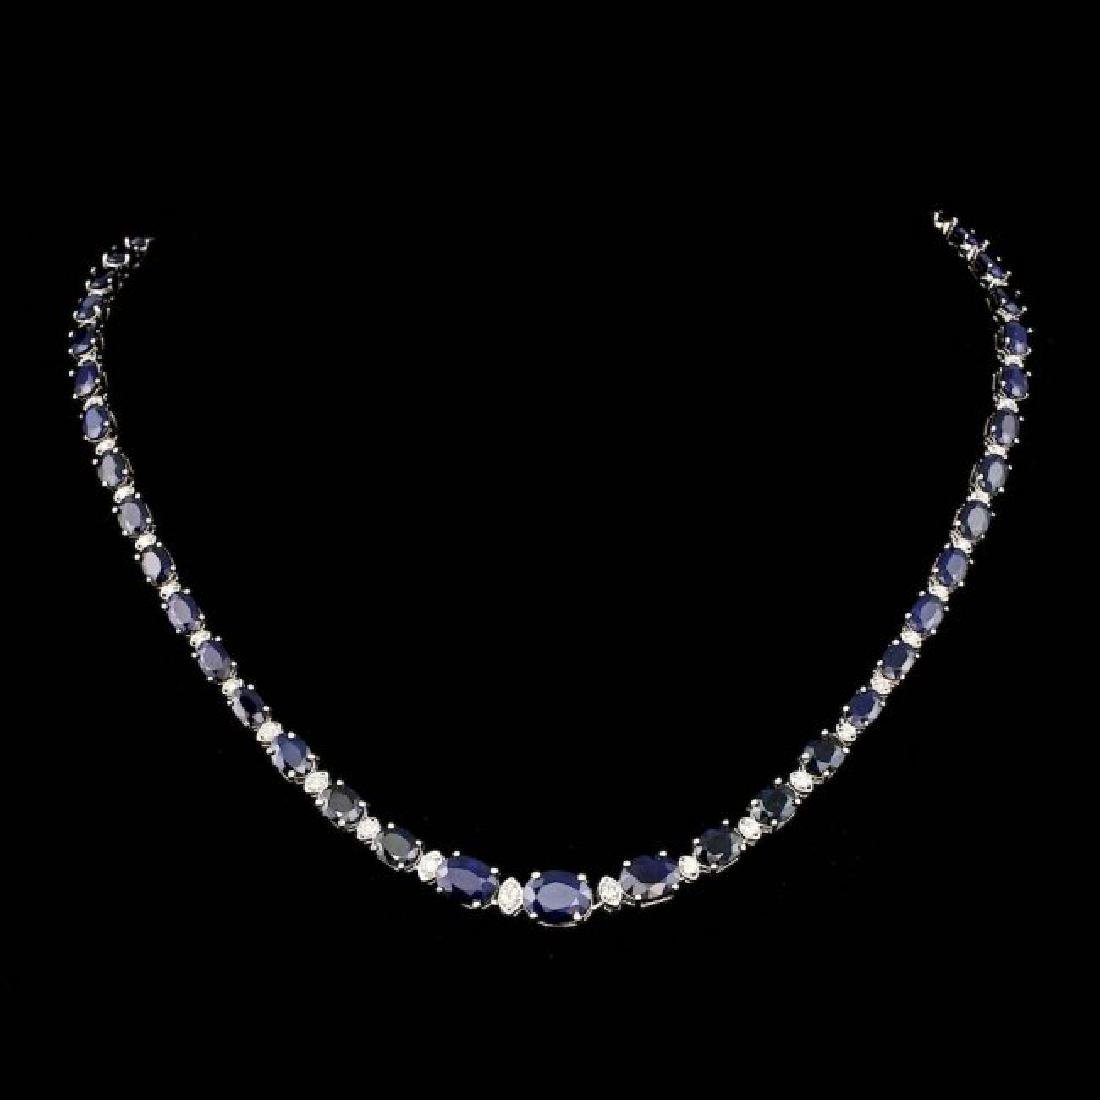 14k Gold 30.00ct Sapphire 1.25ct Diamond Necklace